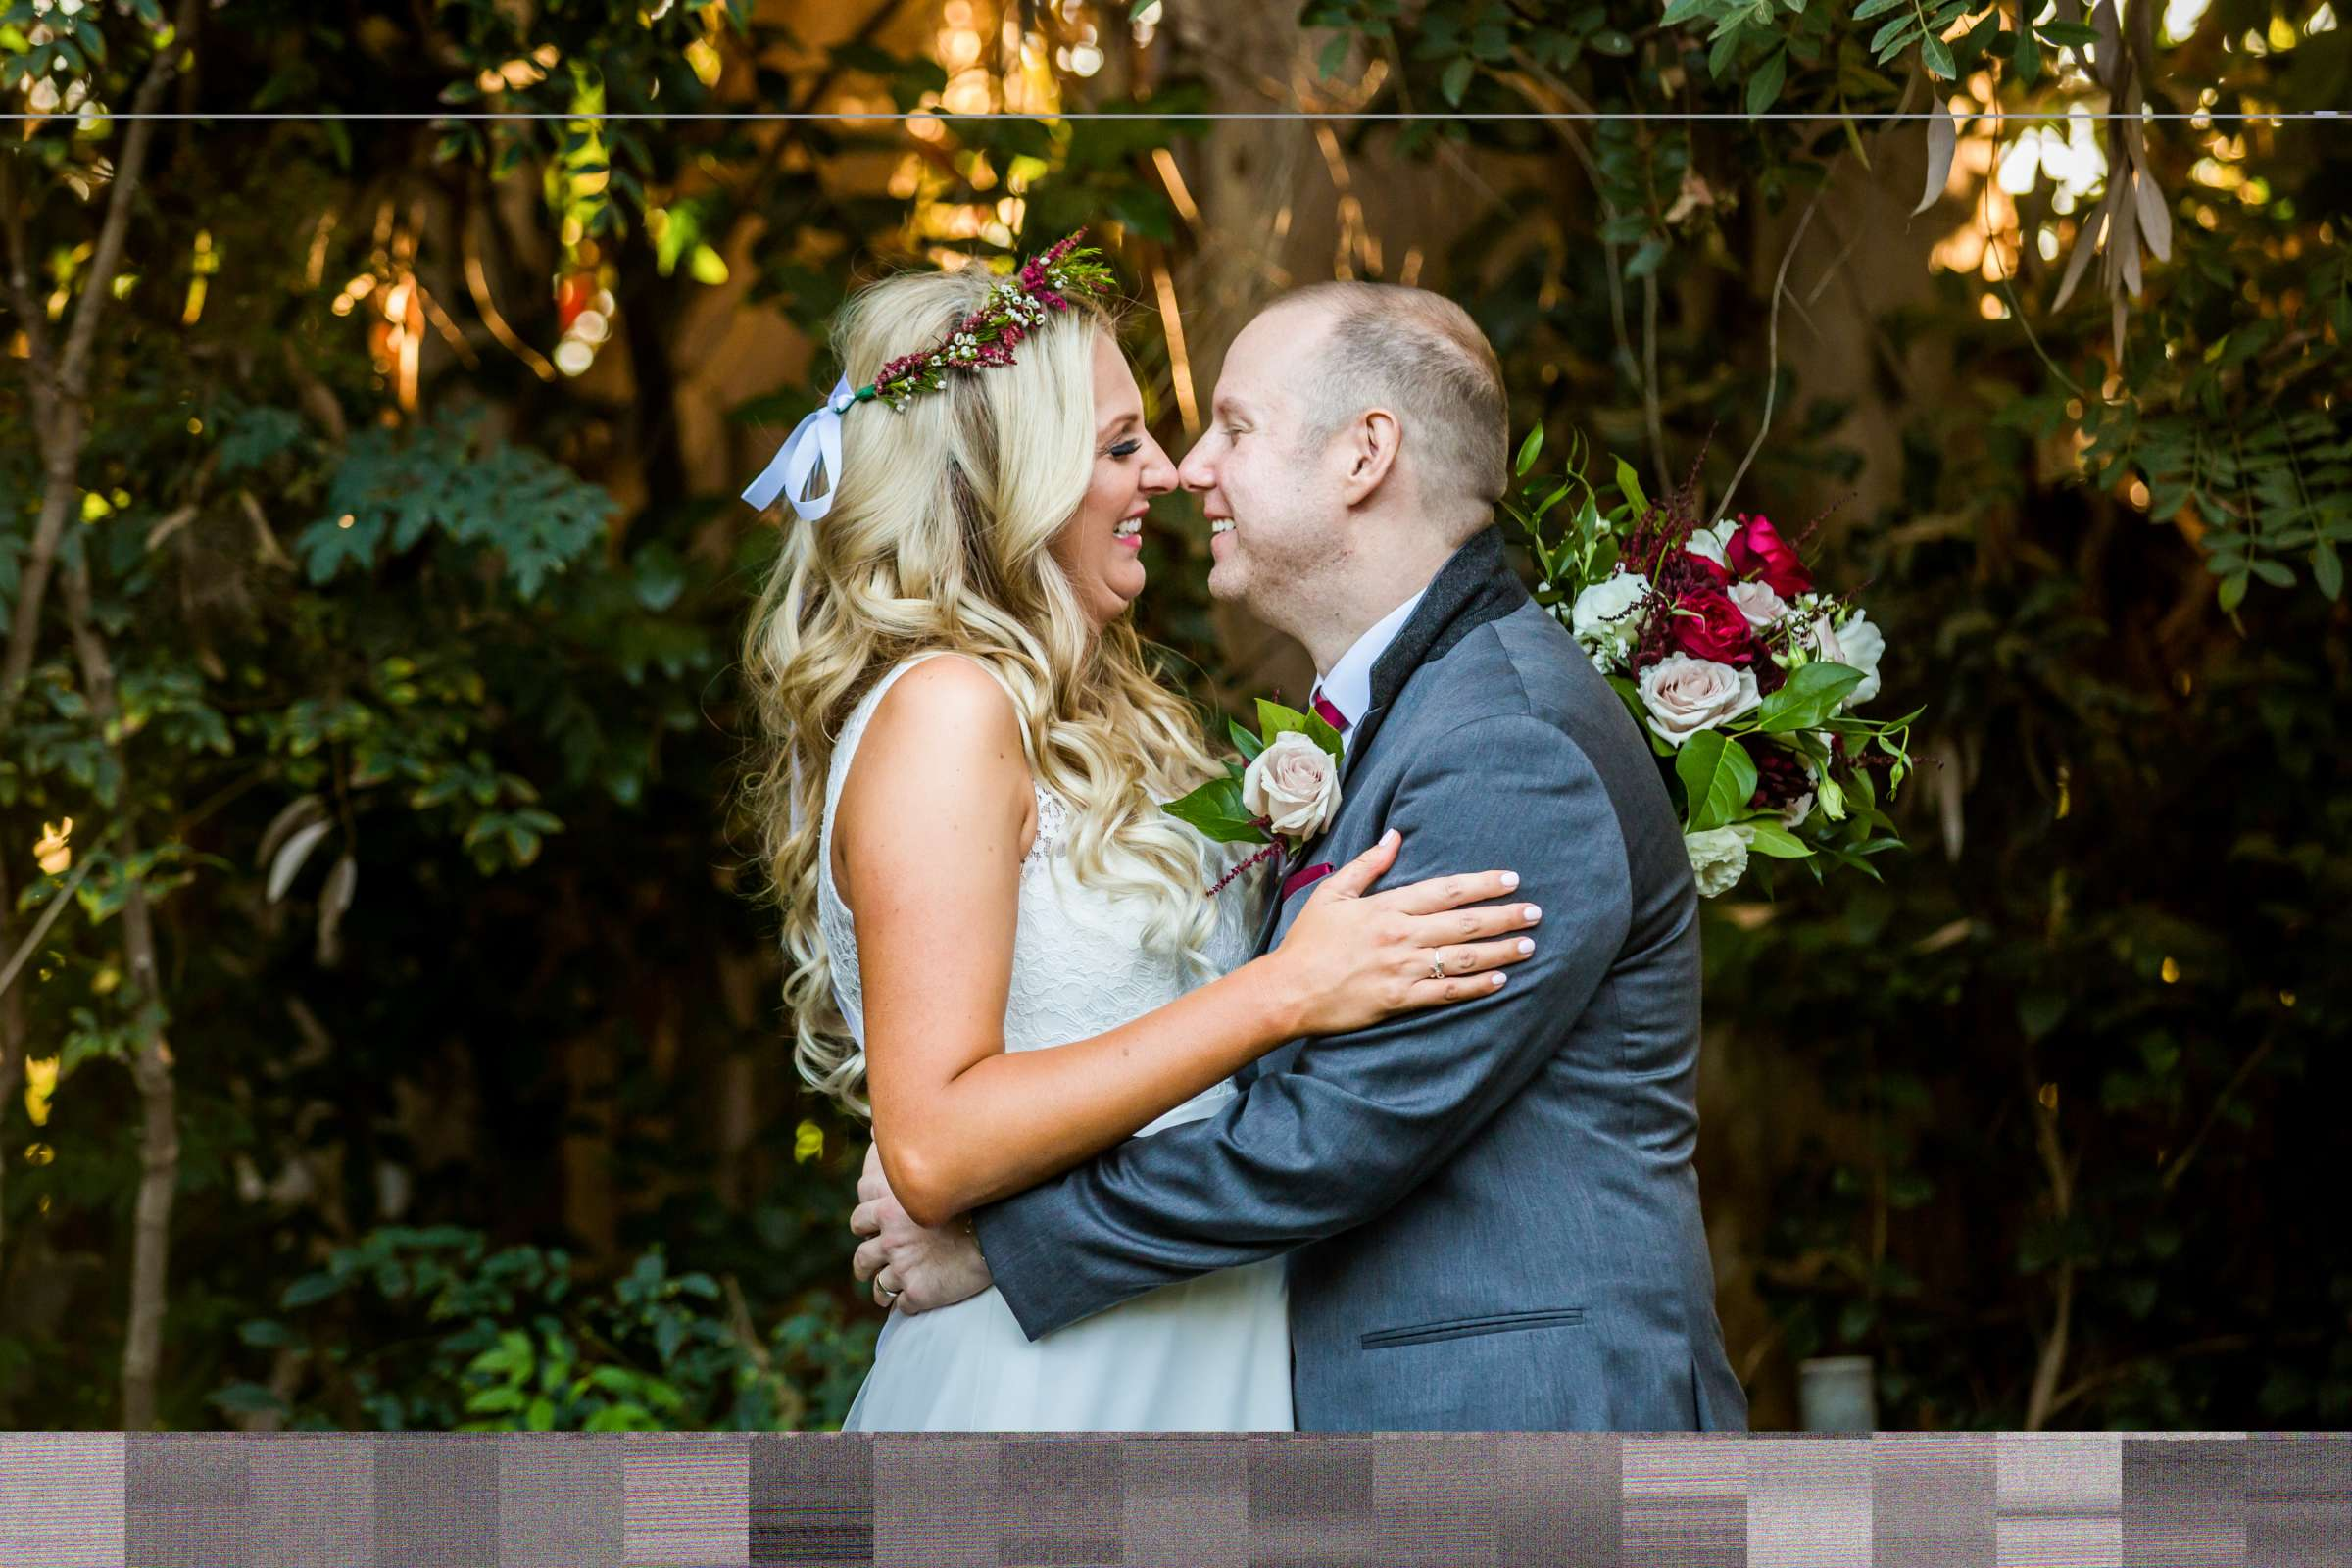 Twin Oaks House & Gardens Wedding Estate Wedding, Brittany and Sean Wedding Photo #30 by True Photography